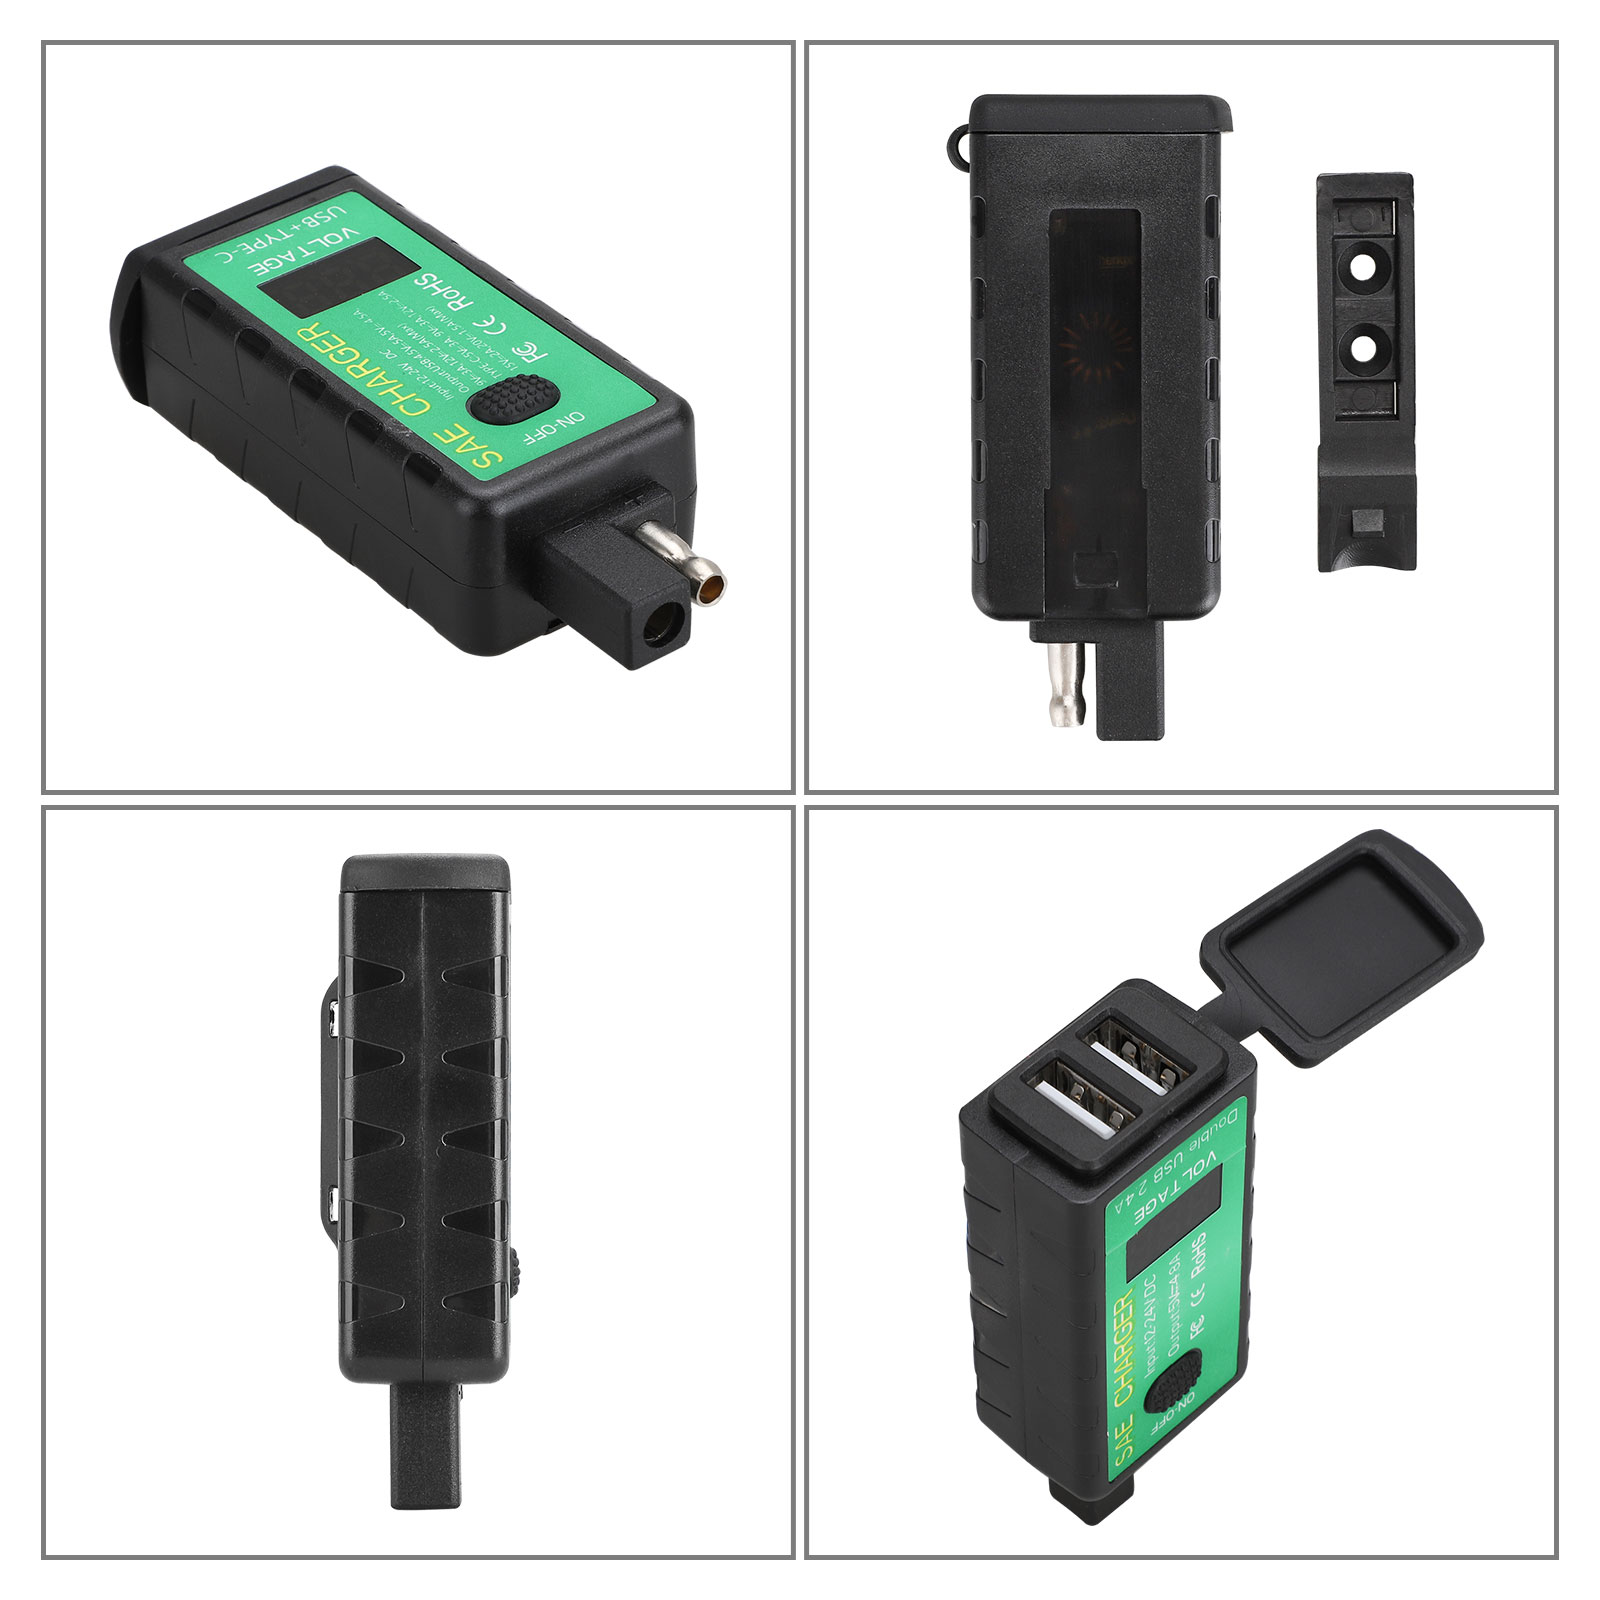 Waterproof Dual USB Ports QC3.0 Fast Charger for Smart Phone Tablet GPS Extractme Motorcycle Dual USB Charger SAE to USB Adapter Cable Kit